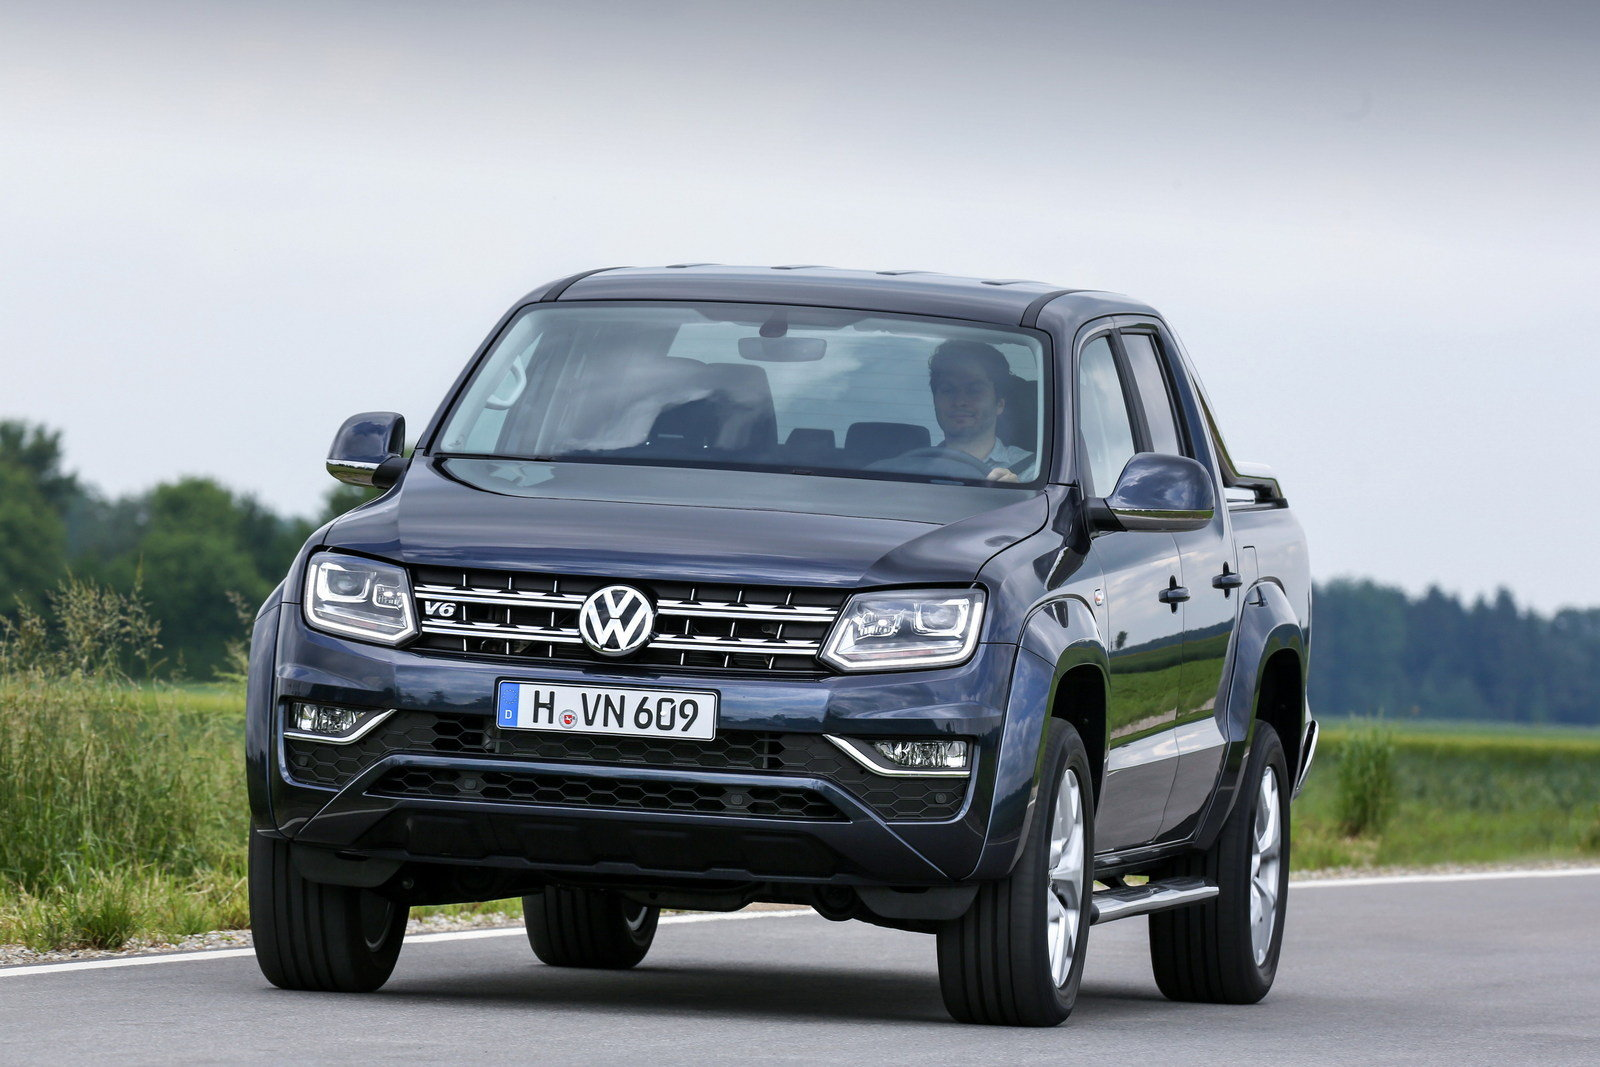 2018 volkswagen amarok picture 688225 truck review top speed. Black Bedroom Furniture Sets. Home Design Ideas